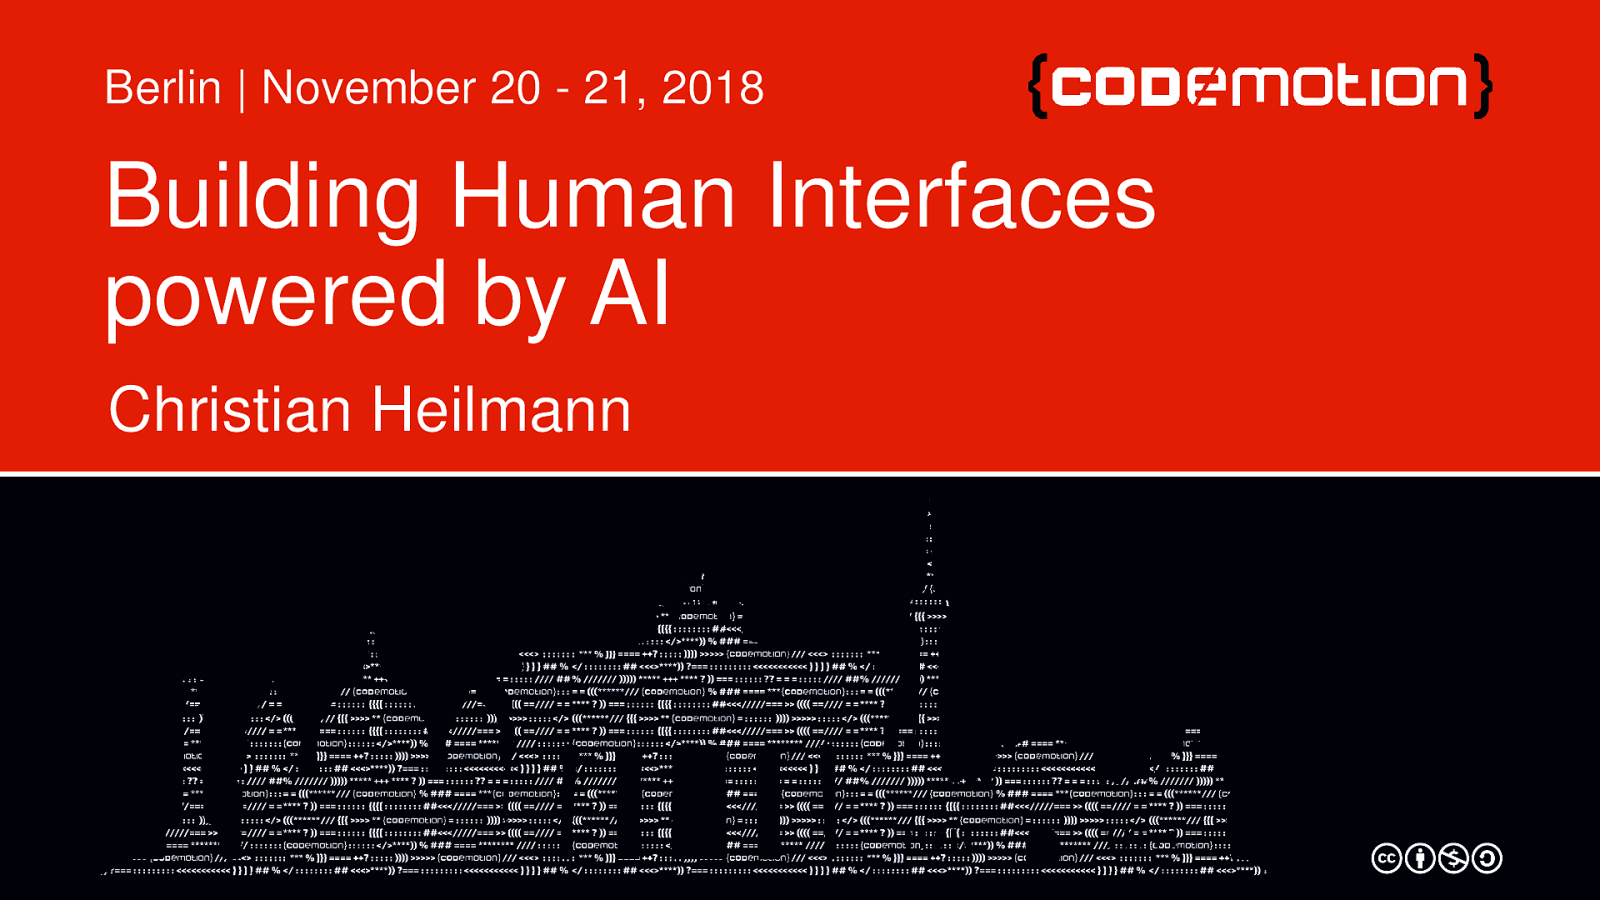 Building human interfaces powered by AI